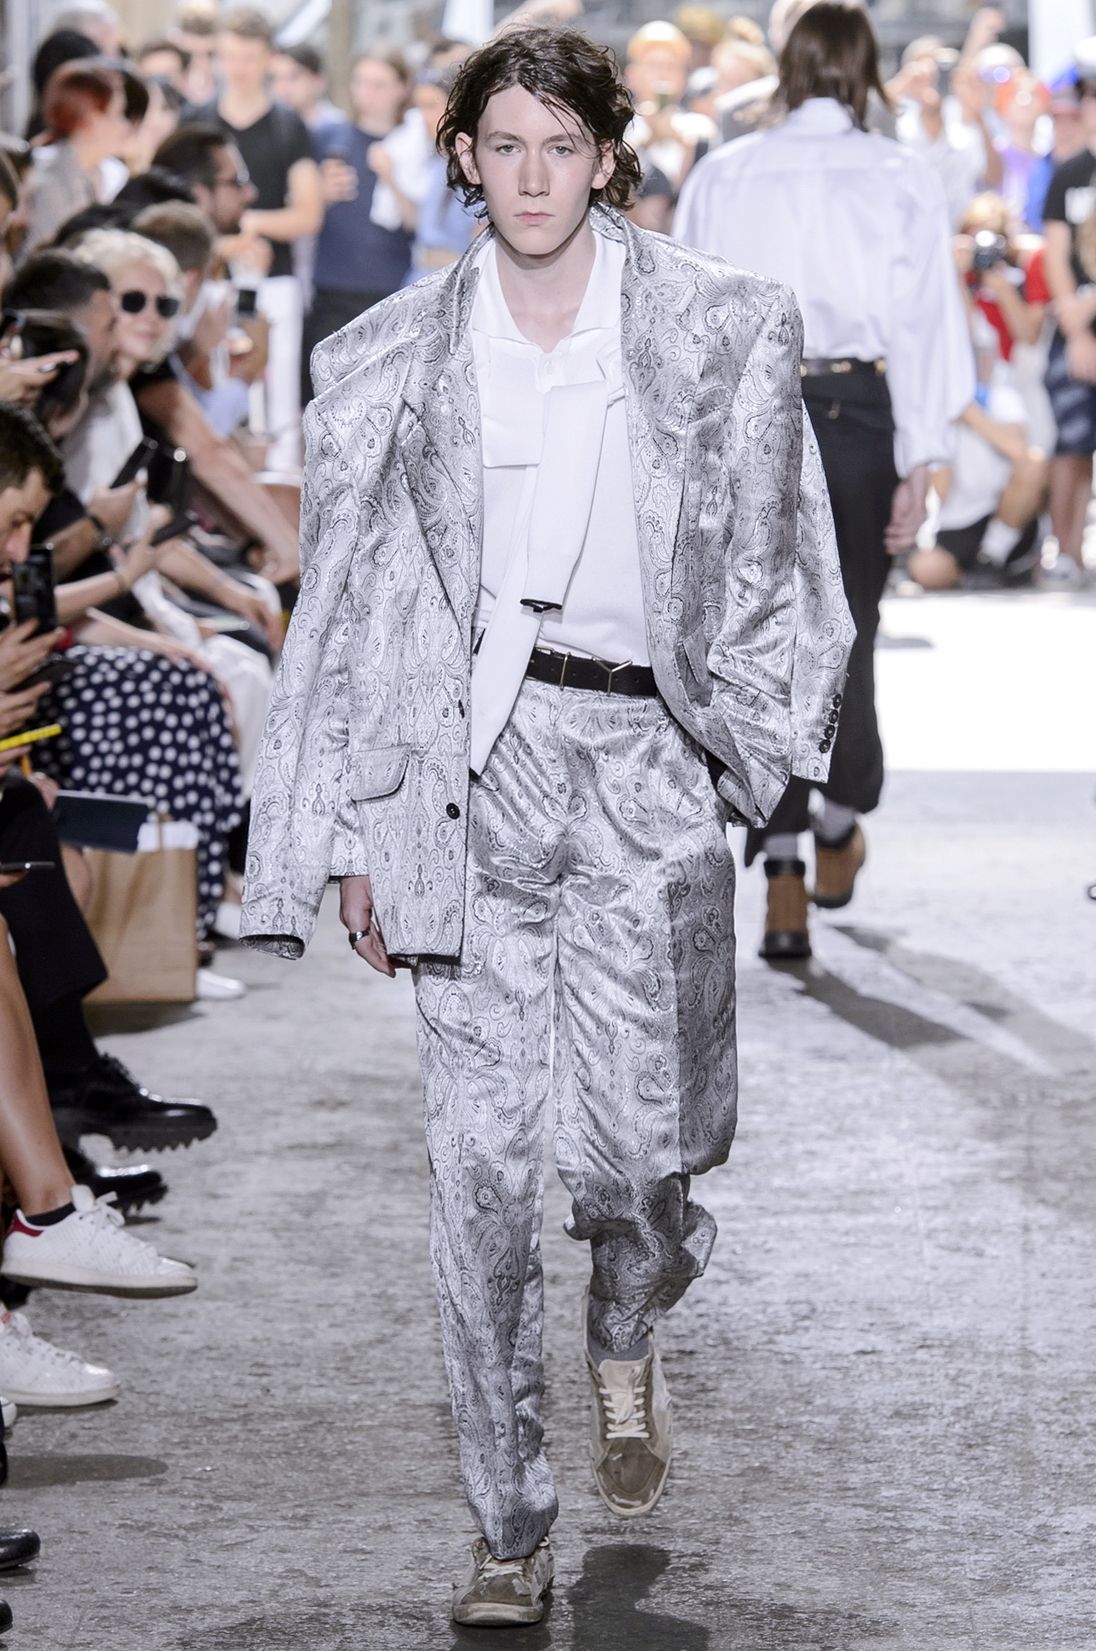 Paris Men'sFashion Week Ready to Wear Spring/Summer 2018: Ein glänzender Anzug bei Y/Project